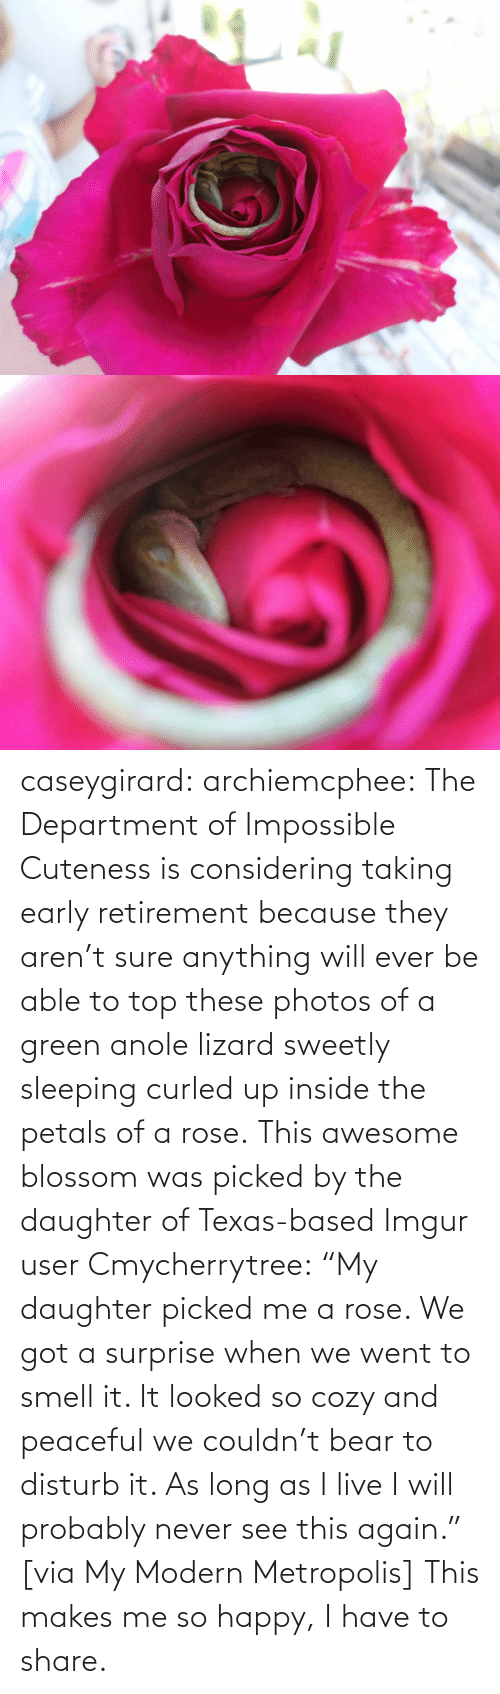 "Texas: caseygirard:  archiemcphee:   The Department of Impossible Cuteness is considering taking early retirement because they aren't sure anything will ever be able to top these photos of a green anole lizard sweetly sleeping curled up inside the petals of a rose. This awesome blossom was picked by the daughter of Texas-based Imgur user Cmycherrytree: ""My daughter picked me a rose. We got a surprise when we went to smell it. It looked so cozy and peaceful we couldn't bear to disturb it. As long as I live I will probably never see this again."" [via My Modern Metropolis]   This makes me so happy, I have to share."